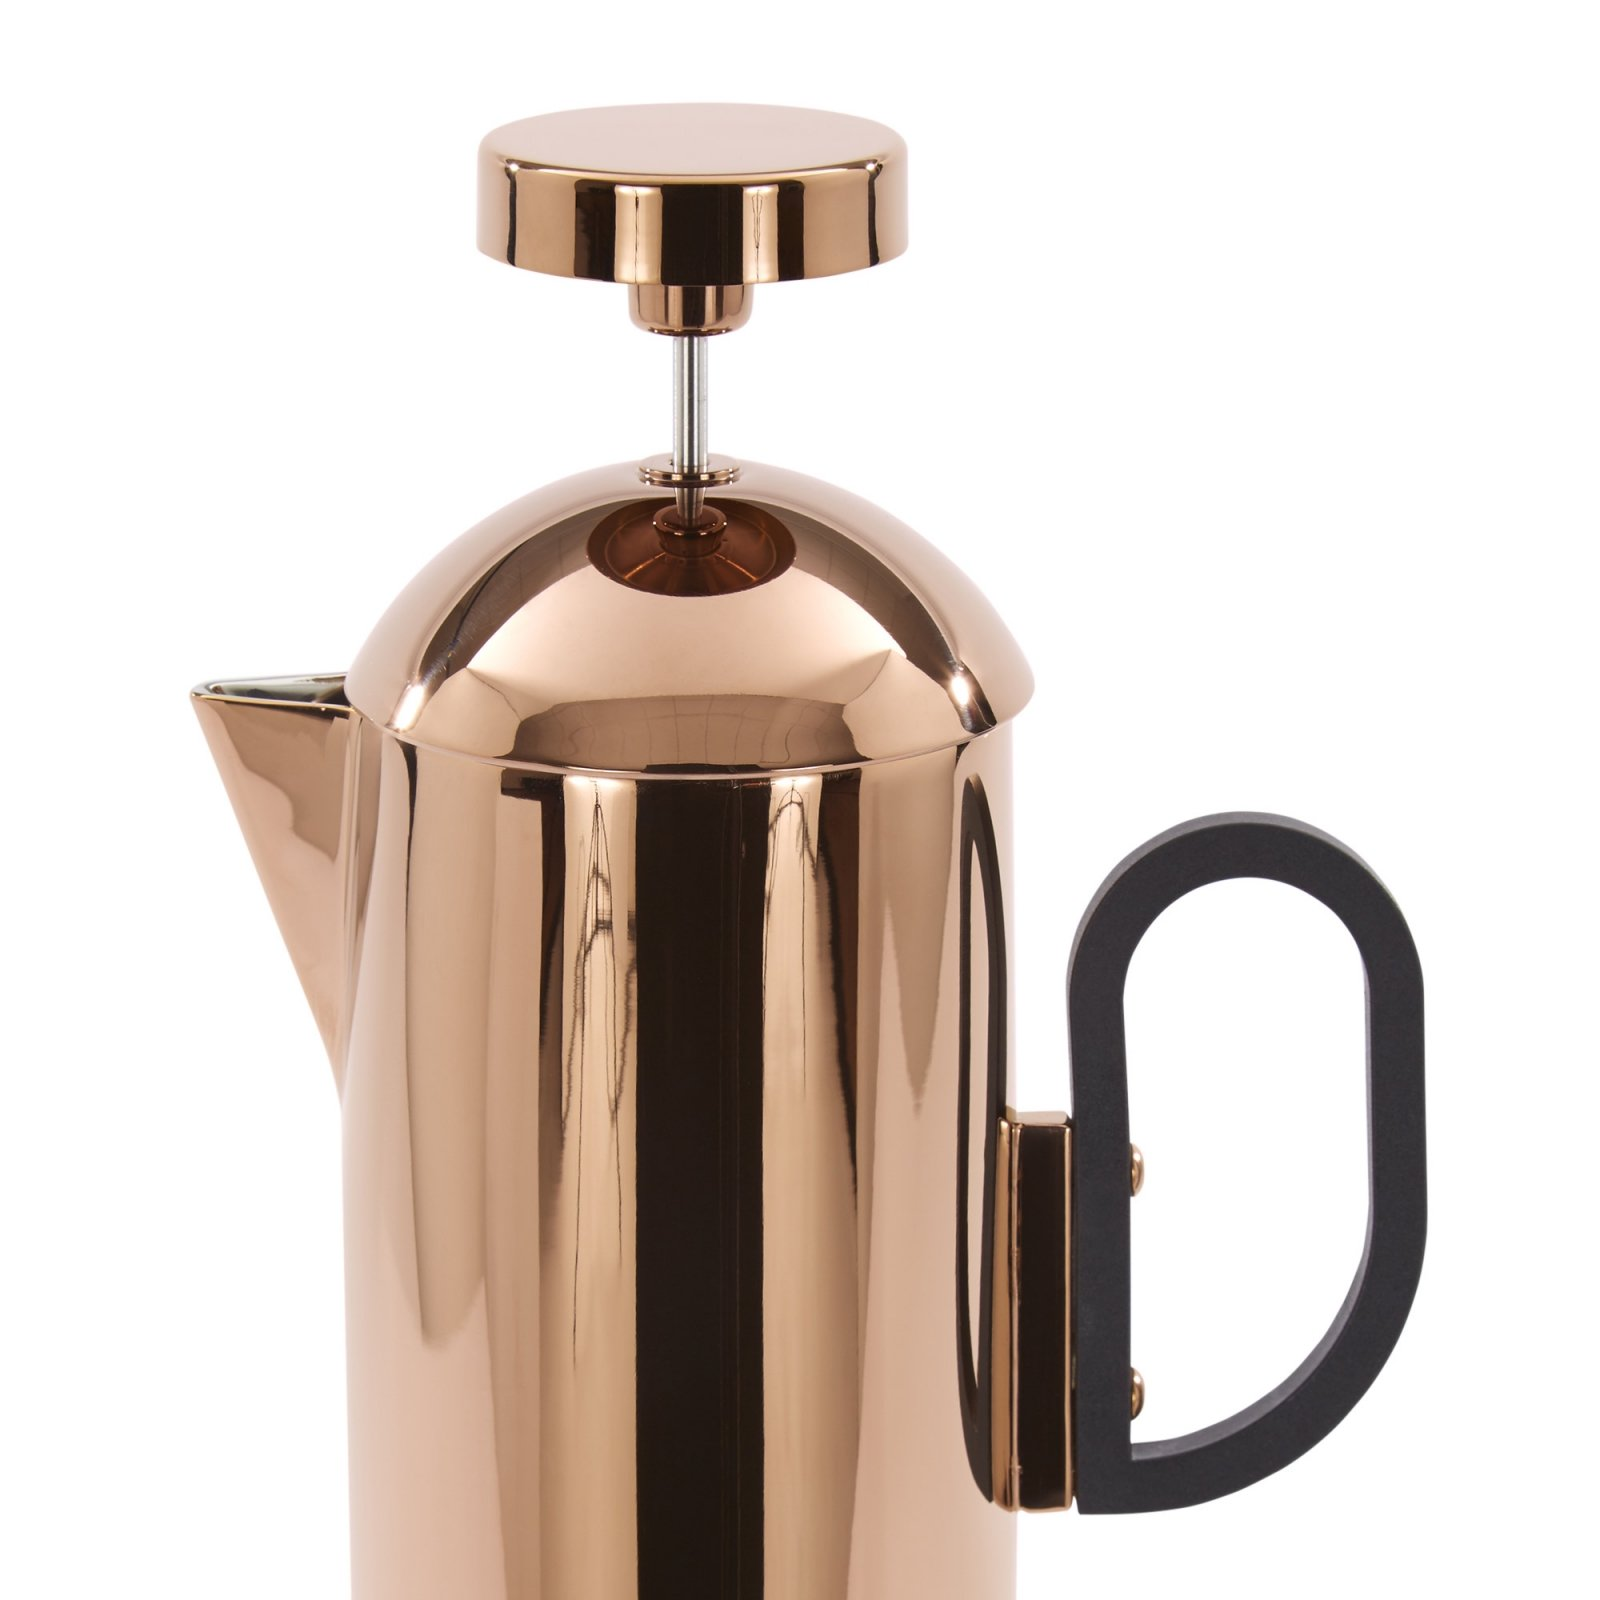 brew-cafetiere-5